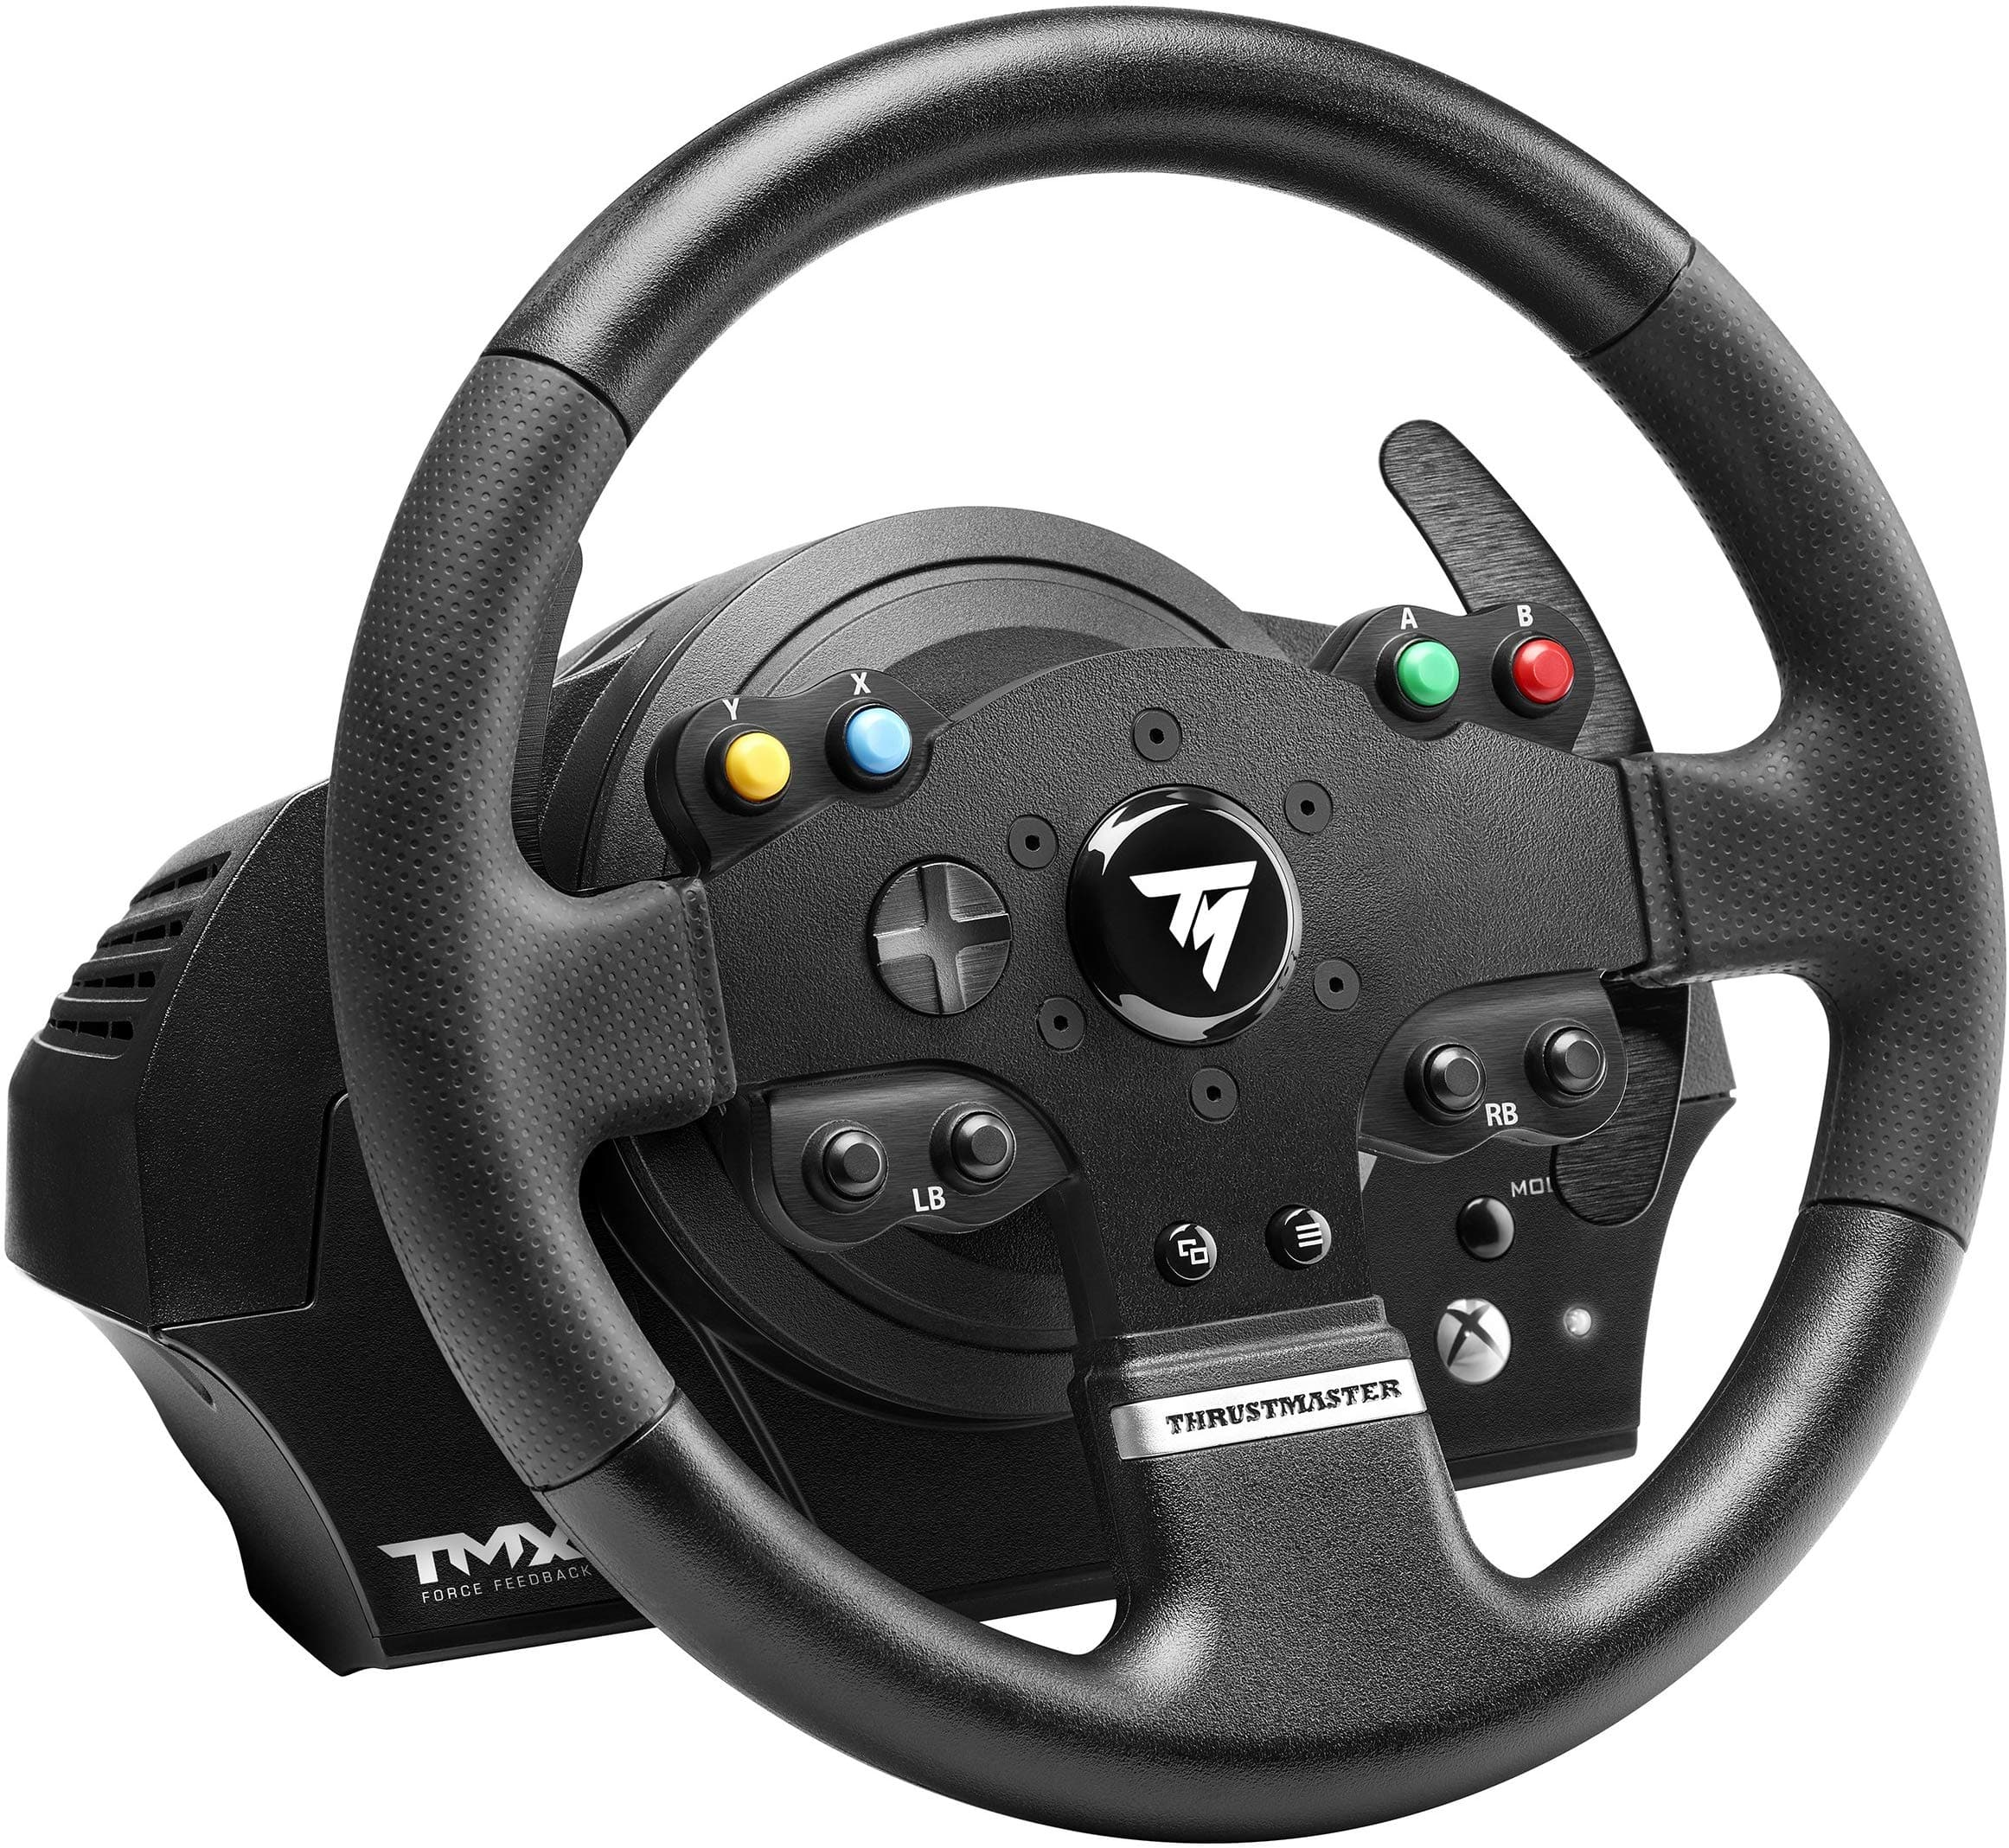 Thrustmaster TMX Force Feedback racing wheel for Xbox One and WINDOWS $159.84